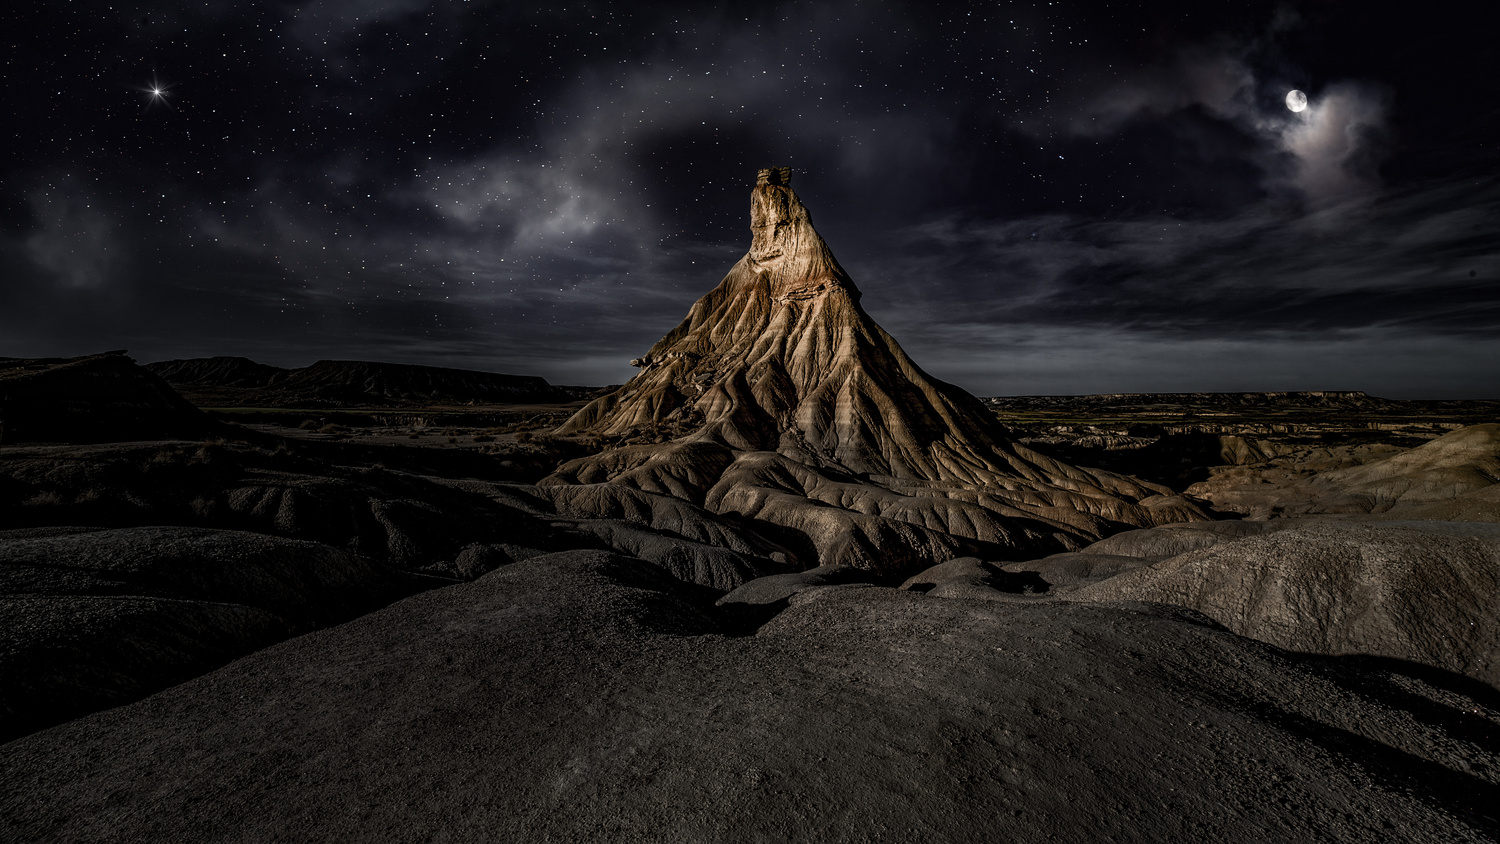 Badlands Bardenas by Carlos Santero